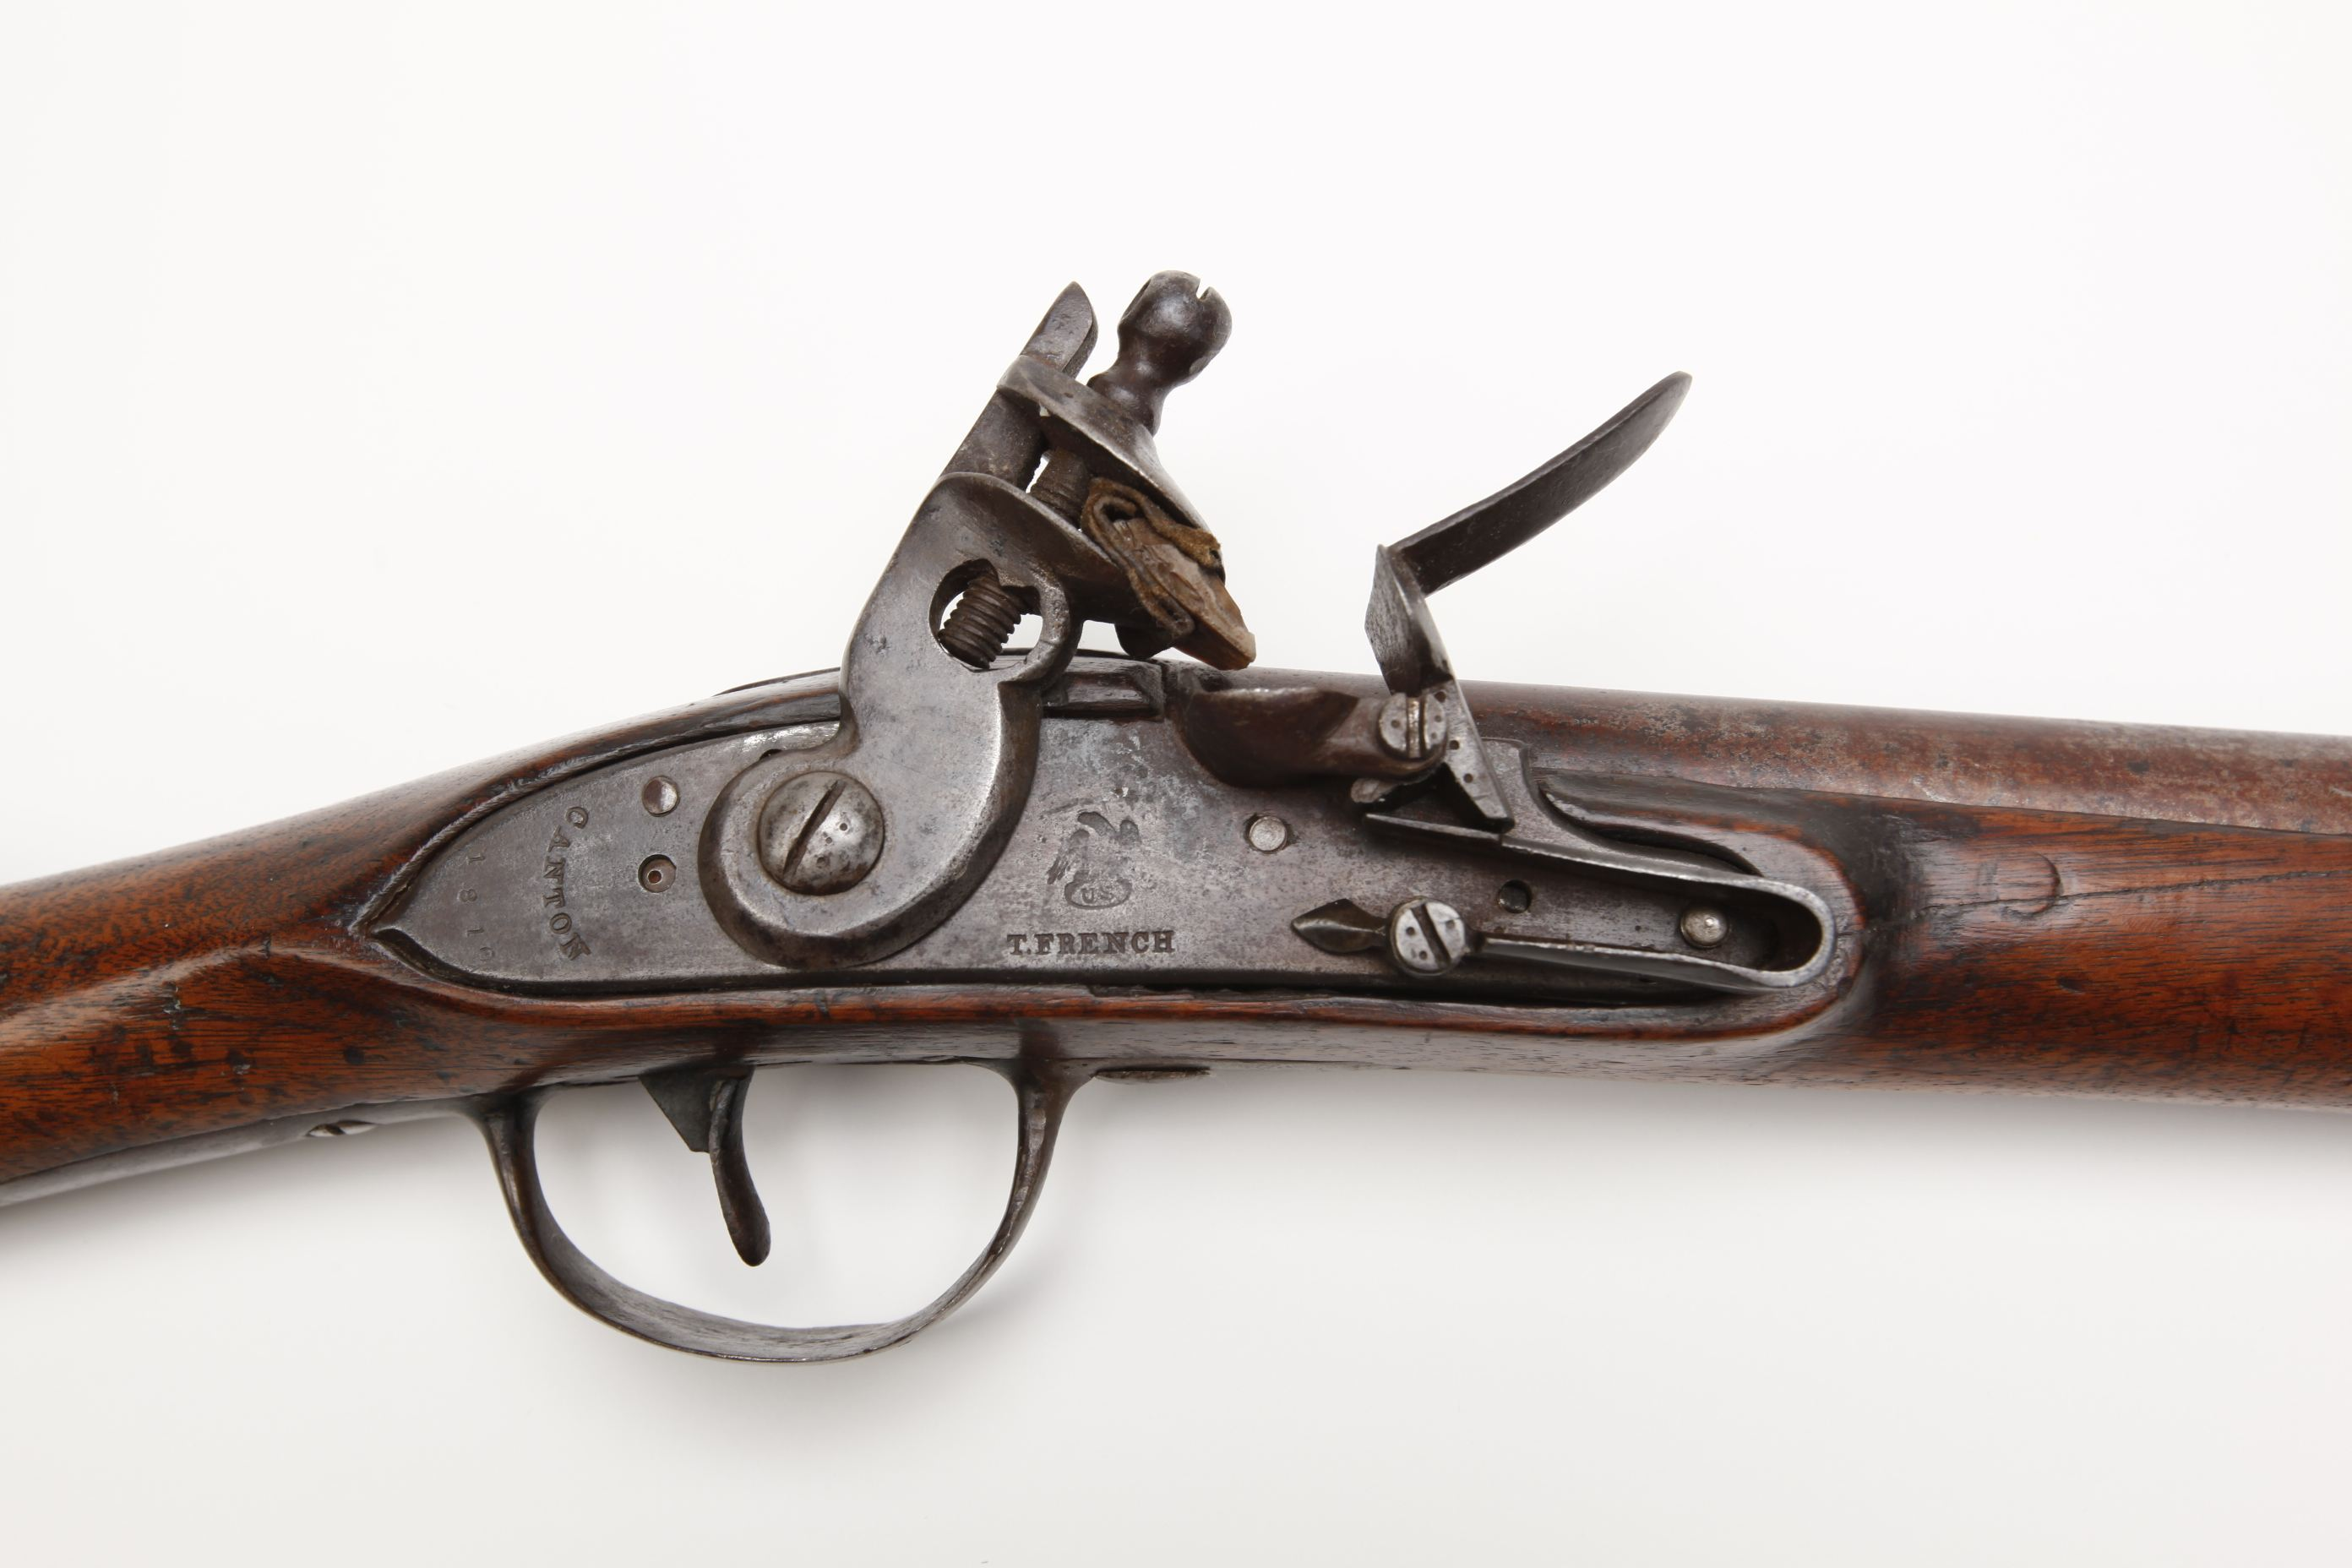 T. French Model 1808 Flintlock Militia Musket